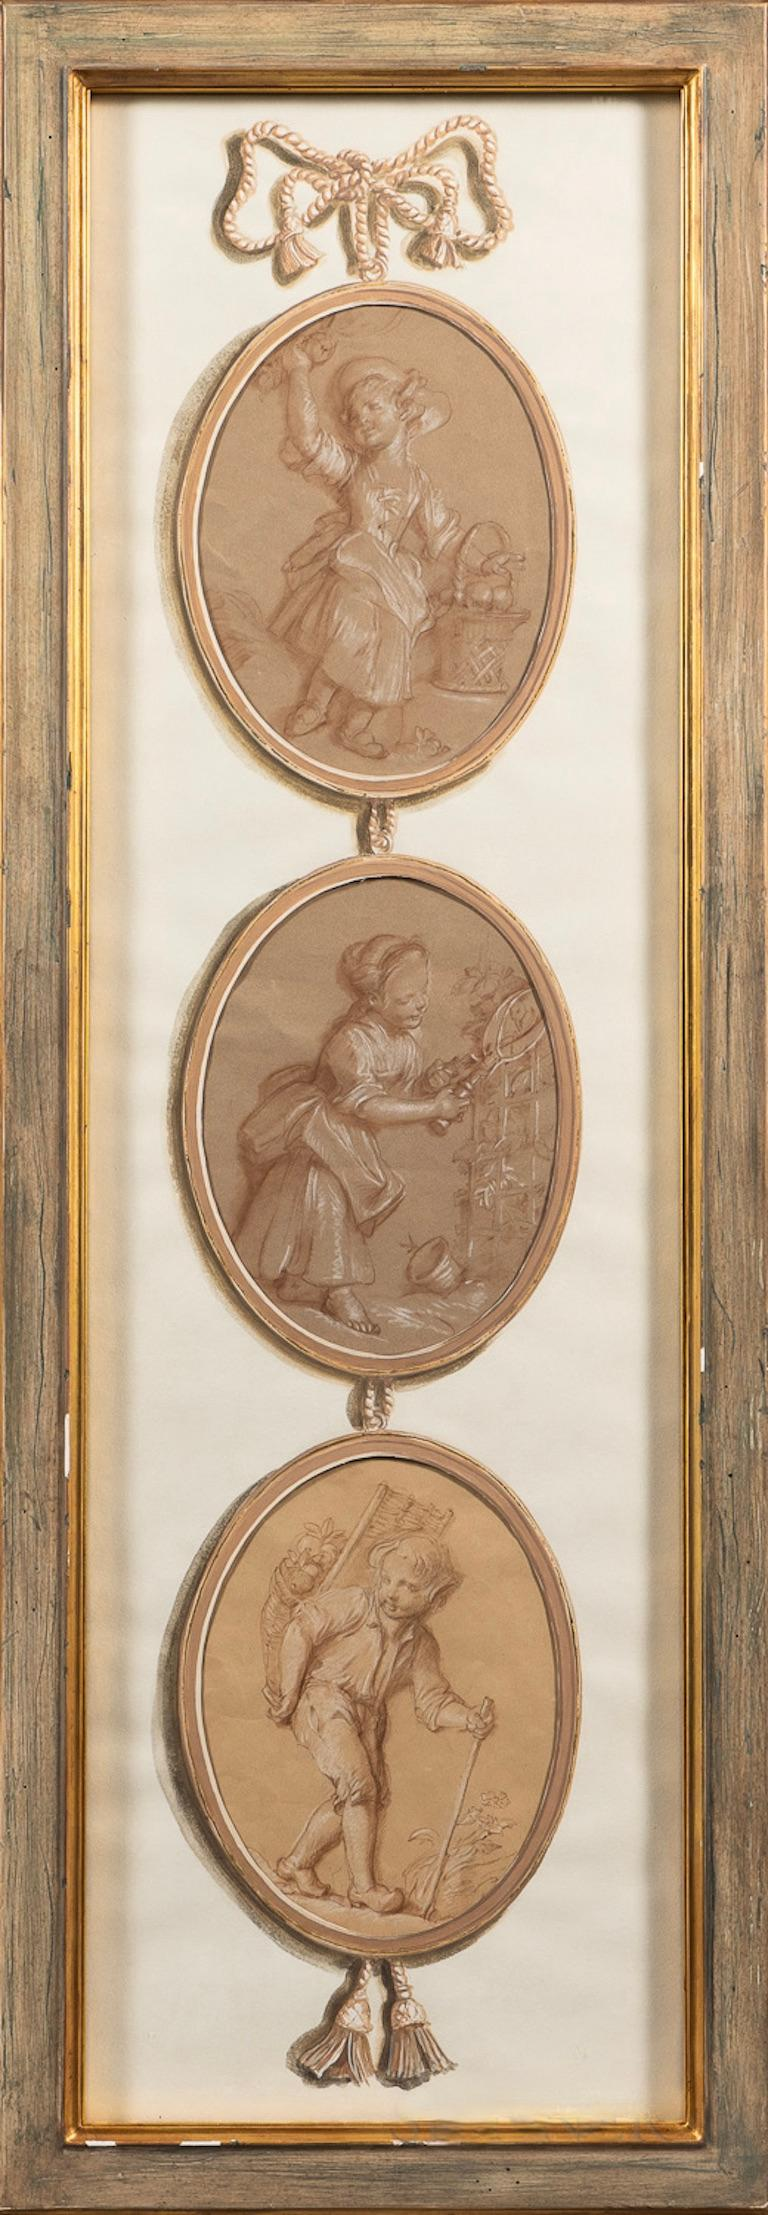 Louis XV Pair of French 18th Century Old Master Style Drawings in Trompe l'Oeil  For Sale